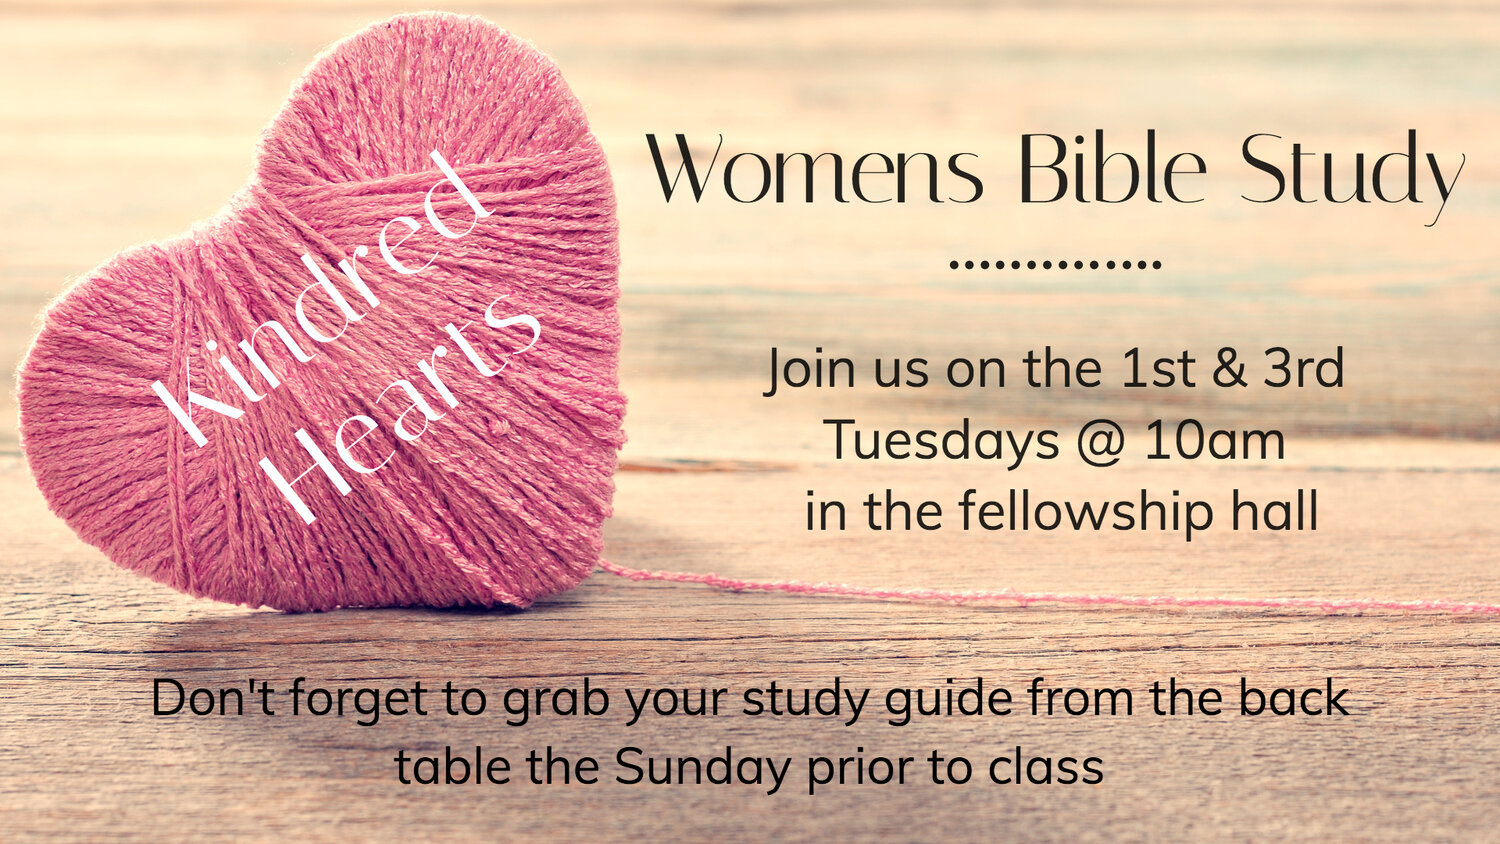 Kindred Hearts would like to invite you to join us. We are seasoned joy divas sharing the Word. We have topical studies with the goal of applying the teaching to our lives. Always good coffee, snacks and conversation. We meet at the GCC Fellowship Hall the first and third Tuesdays of the month at 10:00-11:00am. For more information call Dondra at (530) 885-0942 or Jan Turton (530) 889-2365.